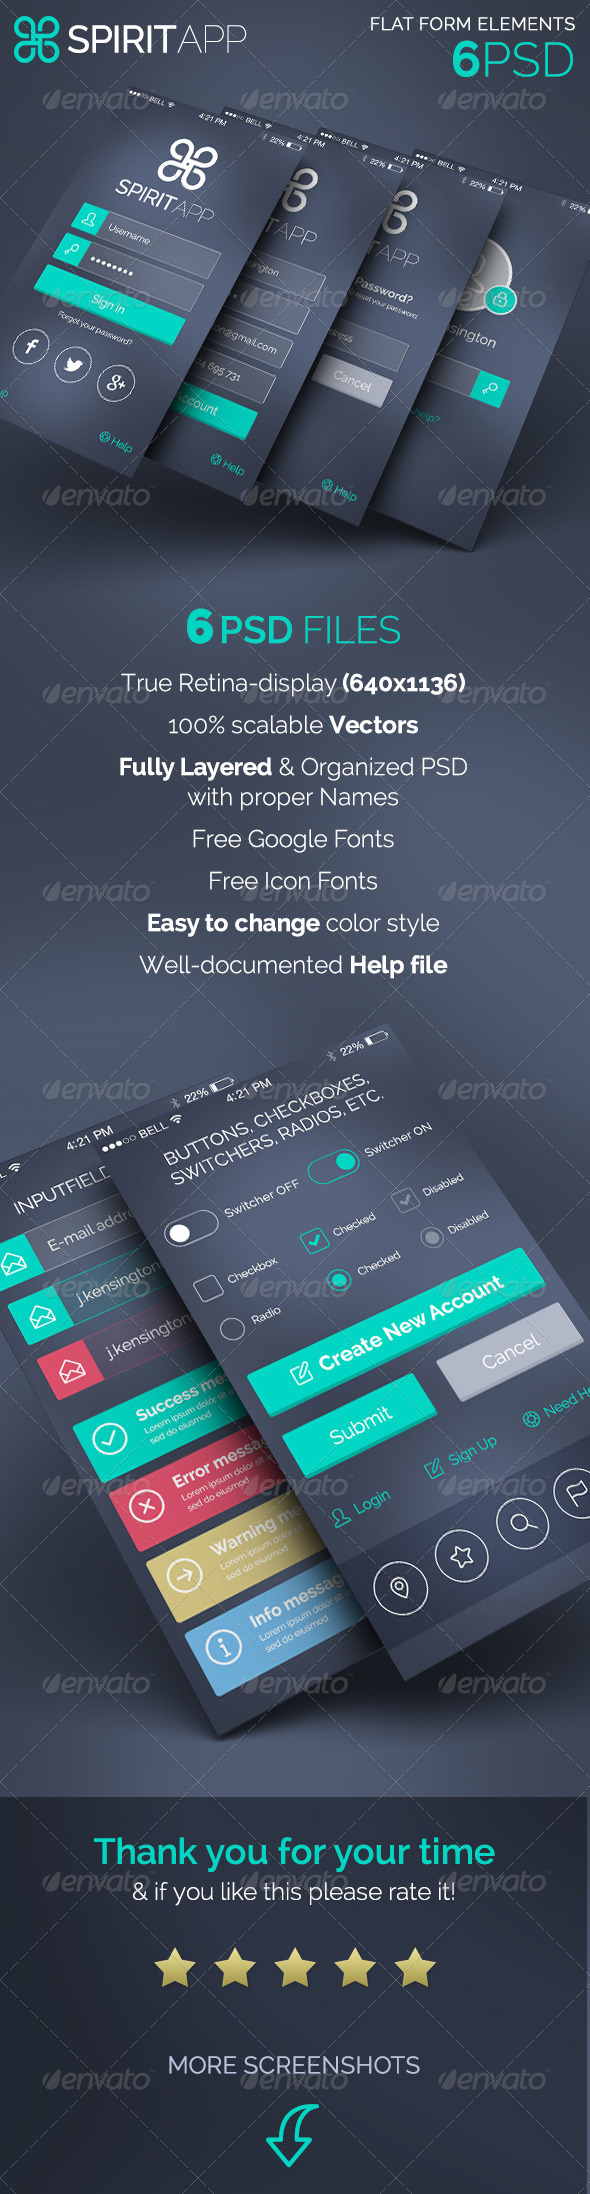 GraphicRiver SpiritApp Flat Form Elements 8081258